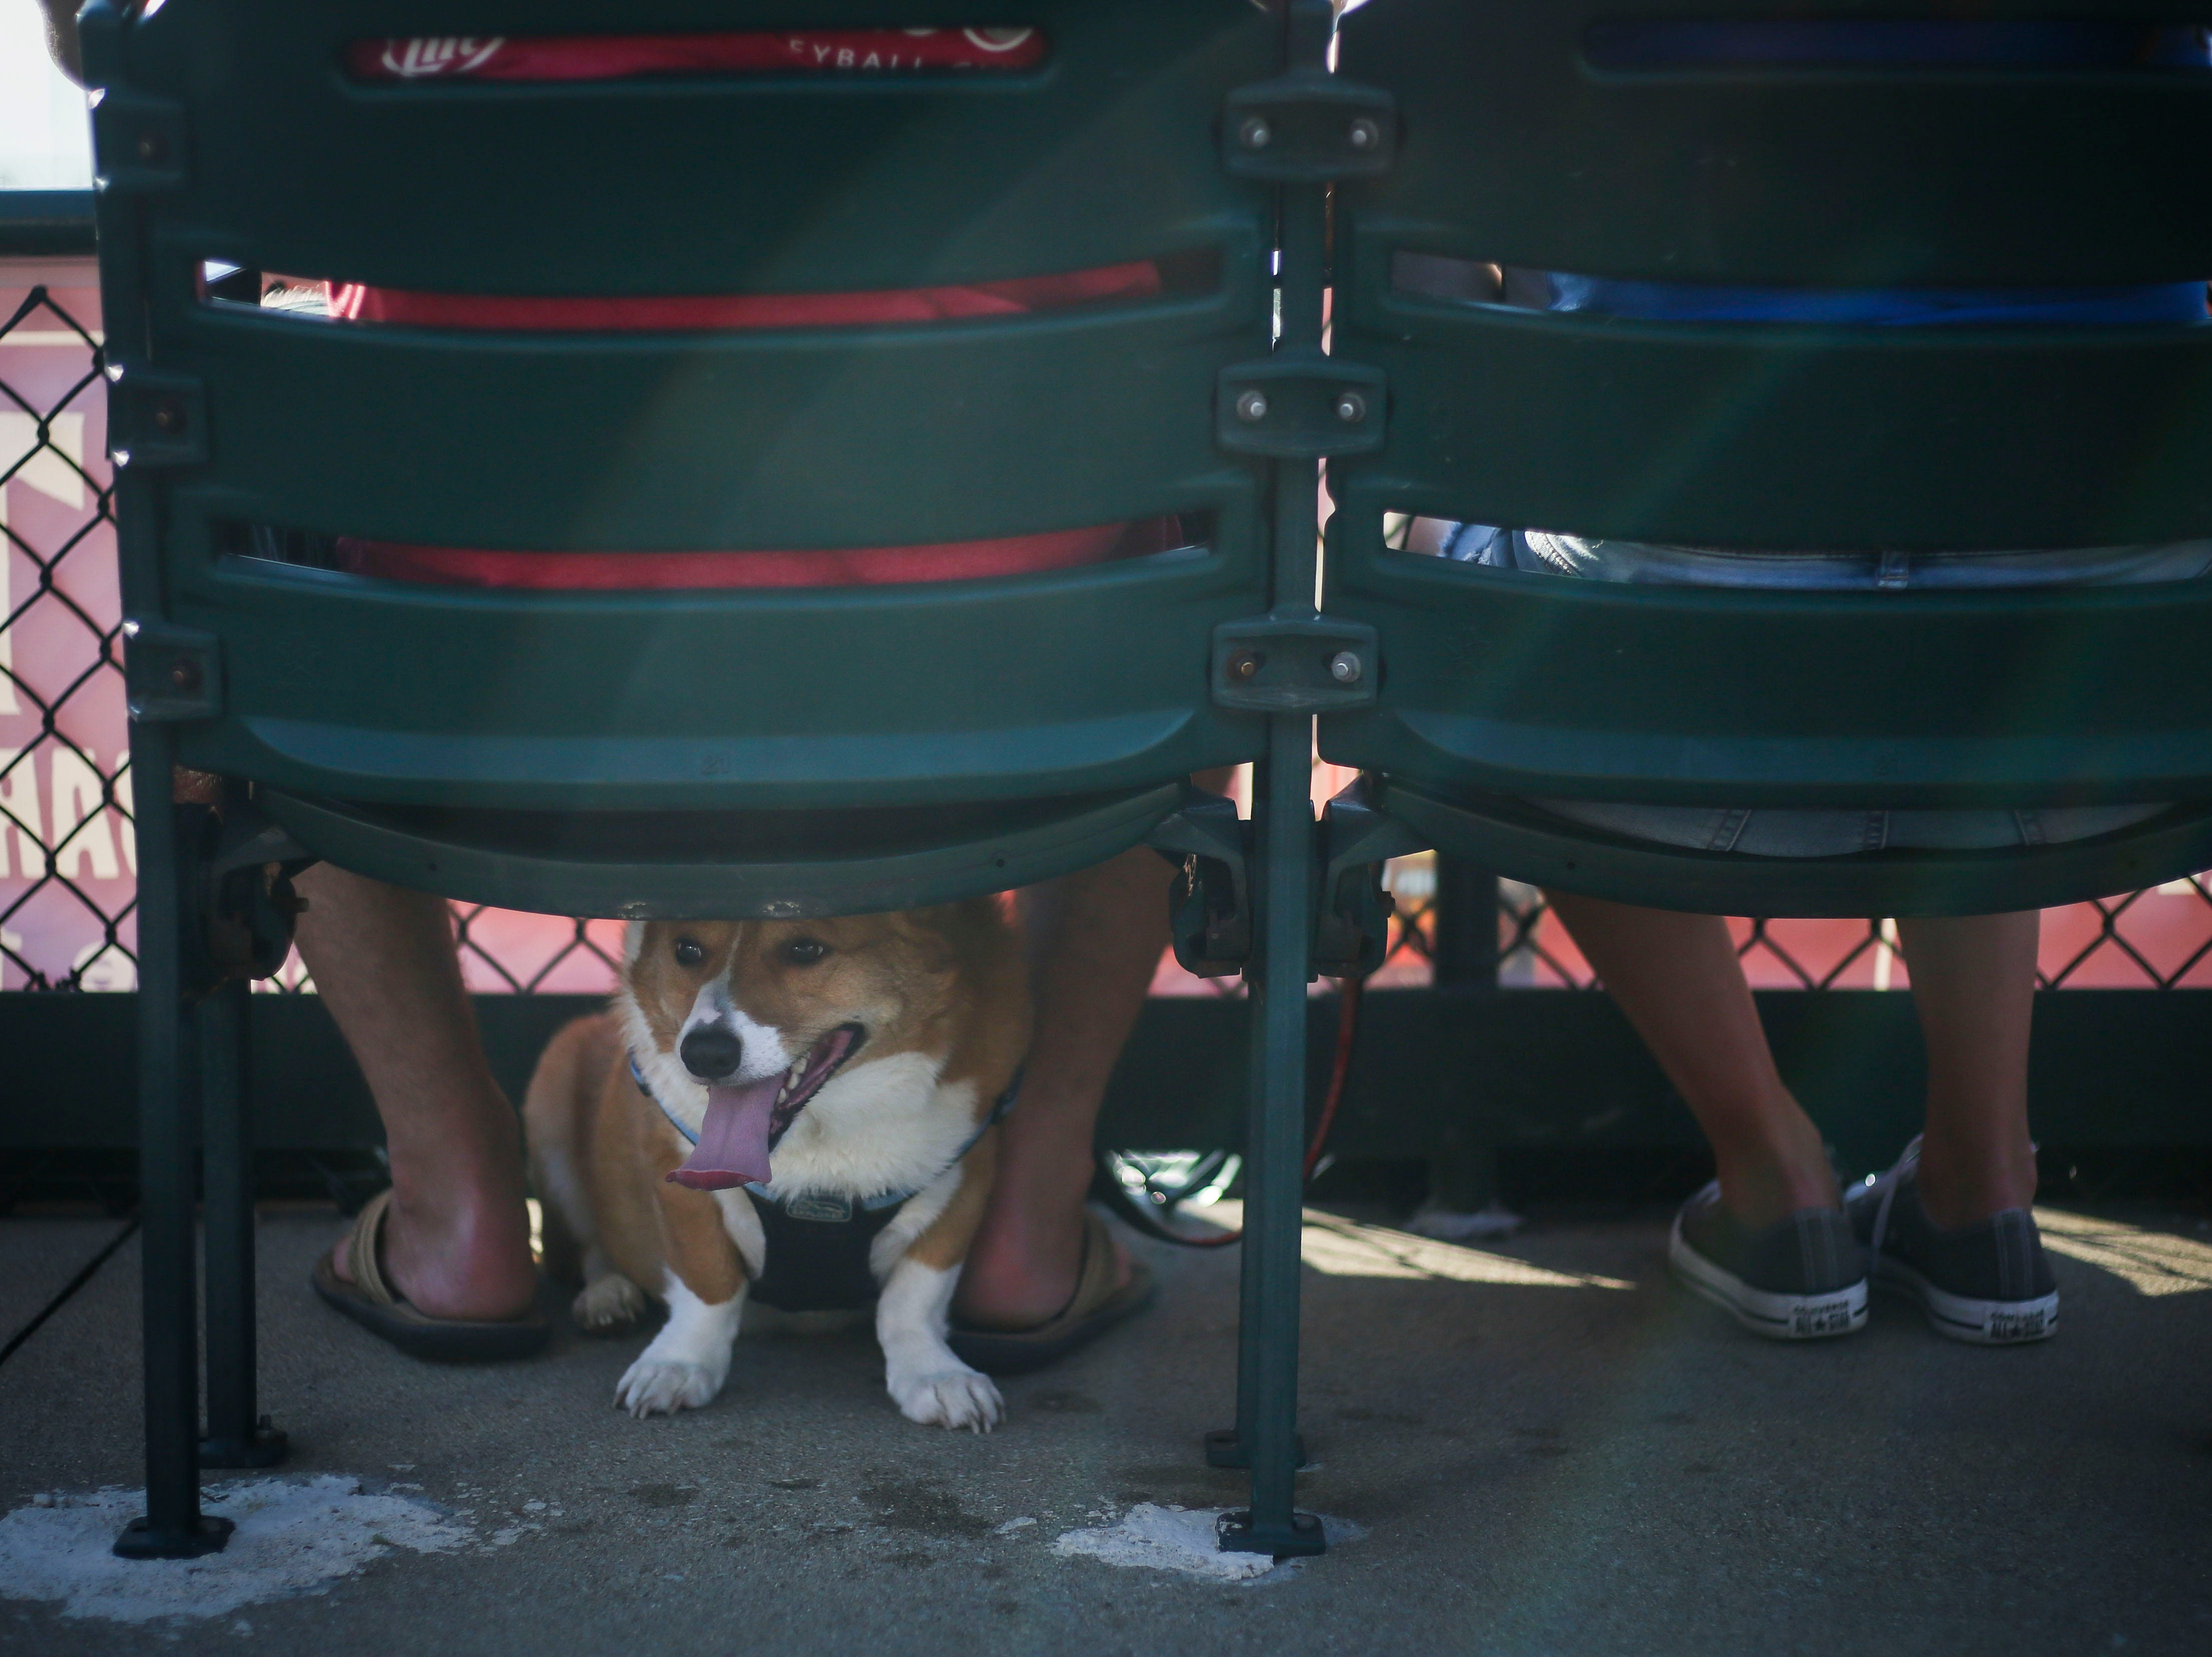 Cooper the corgi hits from the sun under the feet of Dustin Korb, left, and Erin Korb, right, as they watch the Louisville Bats v. Syracuse Mets game during Dog Day Nights at Louisville Slugger Field in downtown Louisville, Ky. on Tuesday, May 7, 2019.